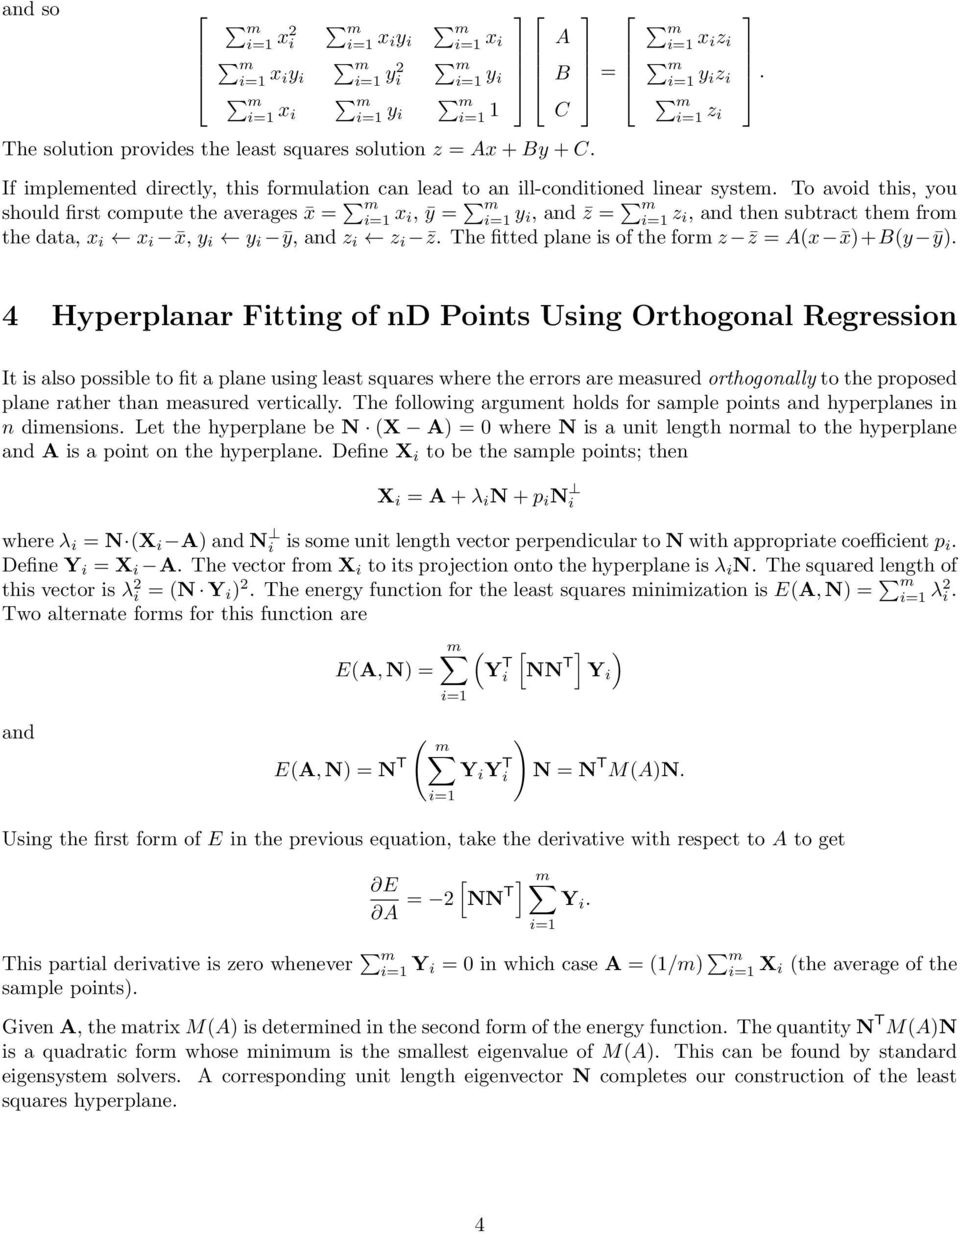 4 Hyperplanar Fttng of nd Ponts Usng Orthogonal Regresson It s also possble to ft a plane usng least squares where the errors are easured orthogonally to the proposed plane rather than easured